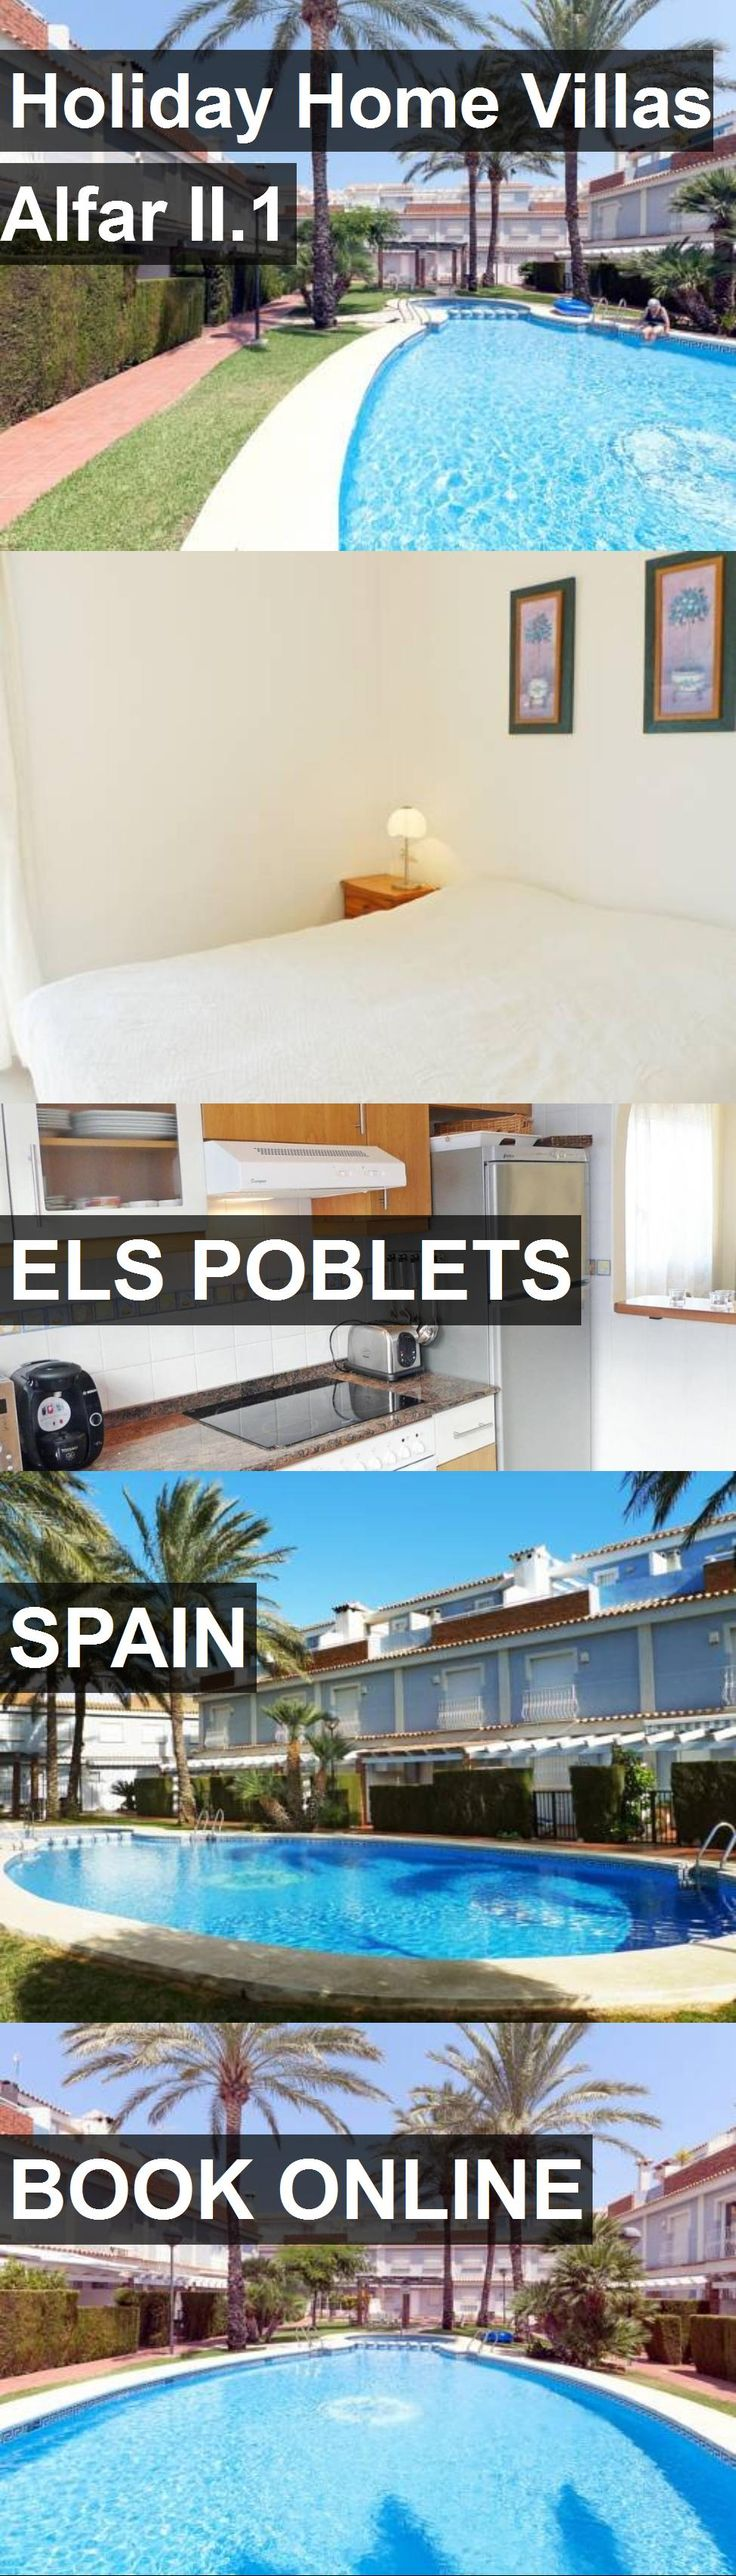 Hotel Holiday Home Villas Alfar II.1 in Els Poblets, Spain. For more information, photos, reviews and best prices please follow the link. #Spain #ElsPoblets #travel #vacation #hotel